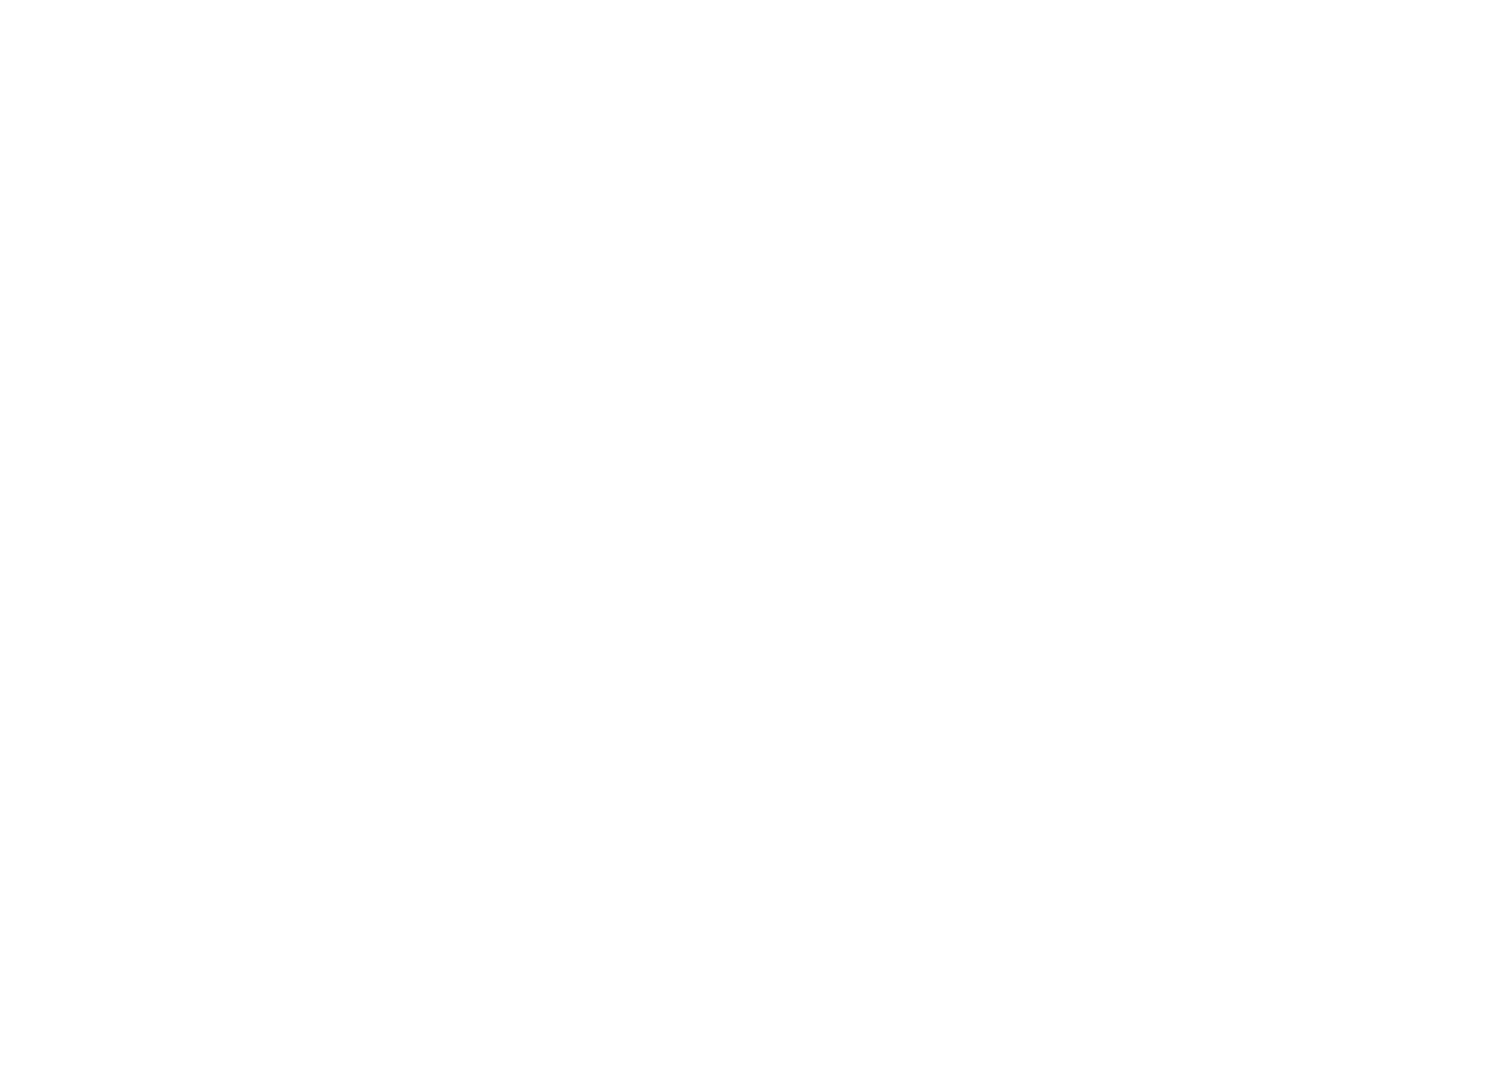 Collingwood Black Espresso & Bar | Coffee, Cuisine & Events Albion